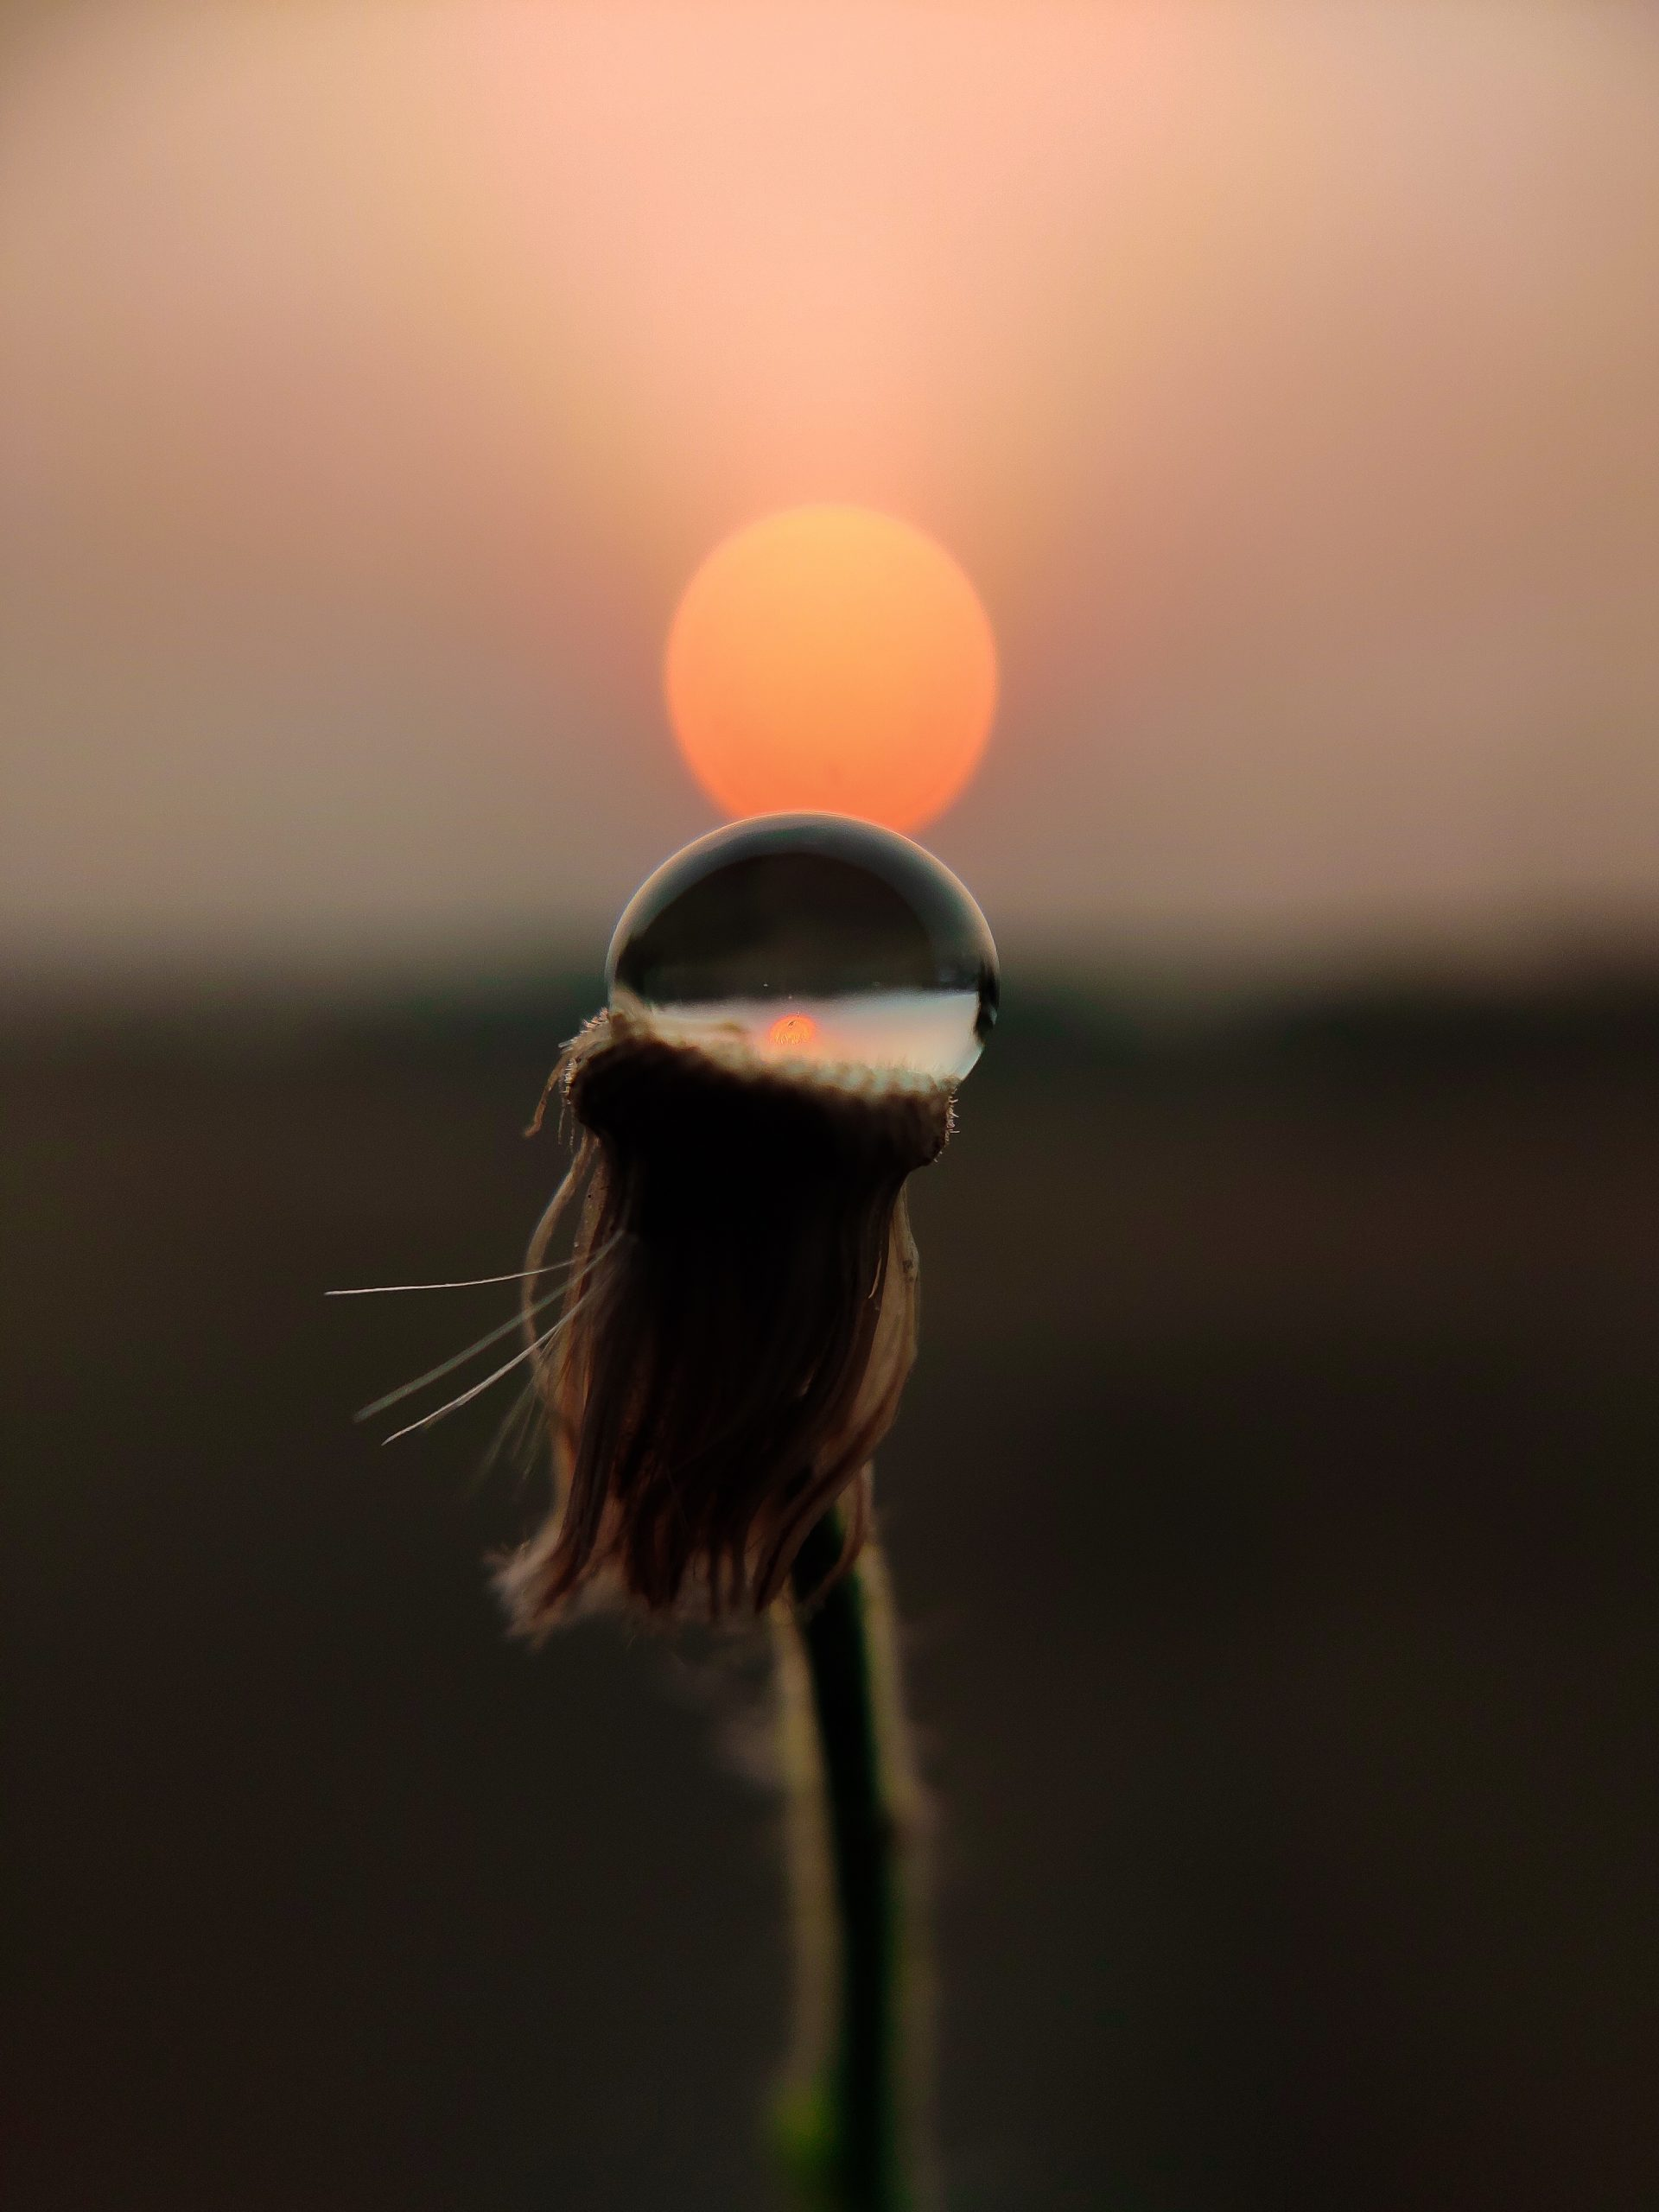 Waterdrop on the plant stem during Sunset